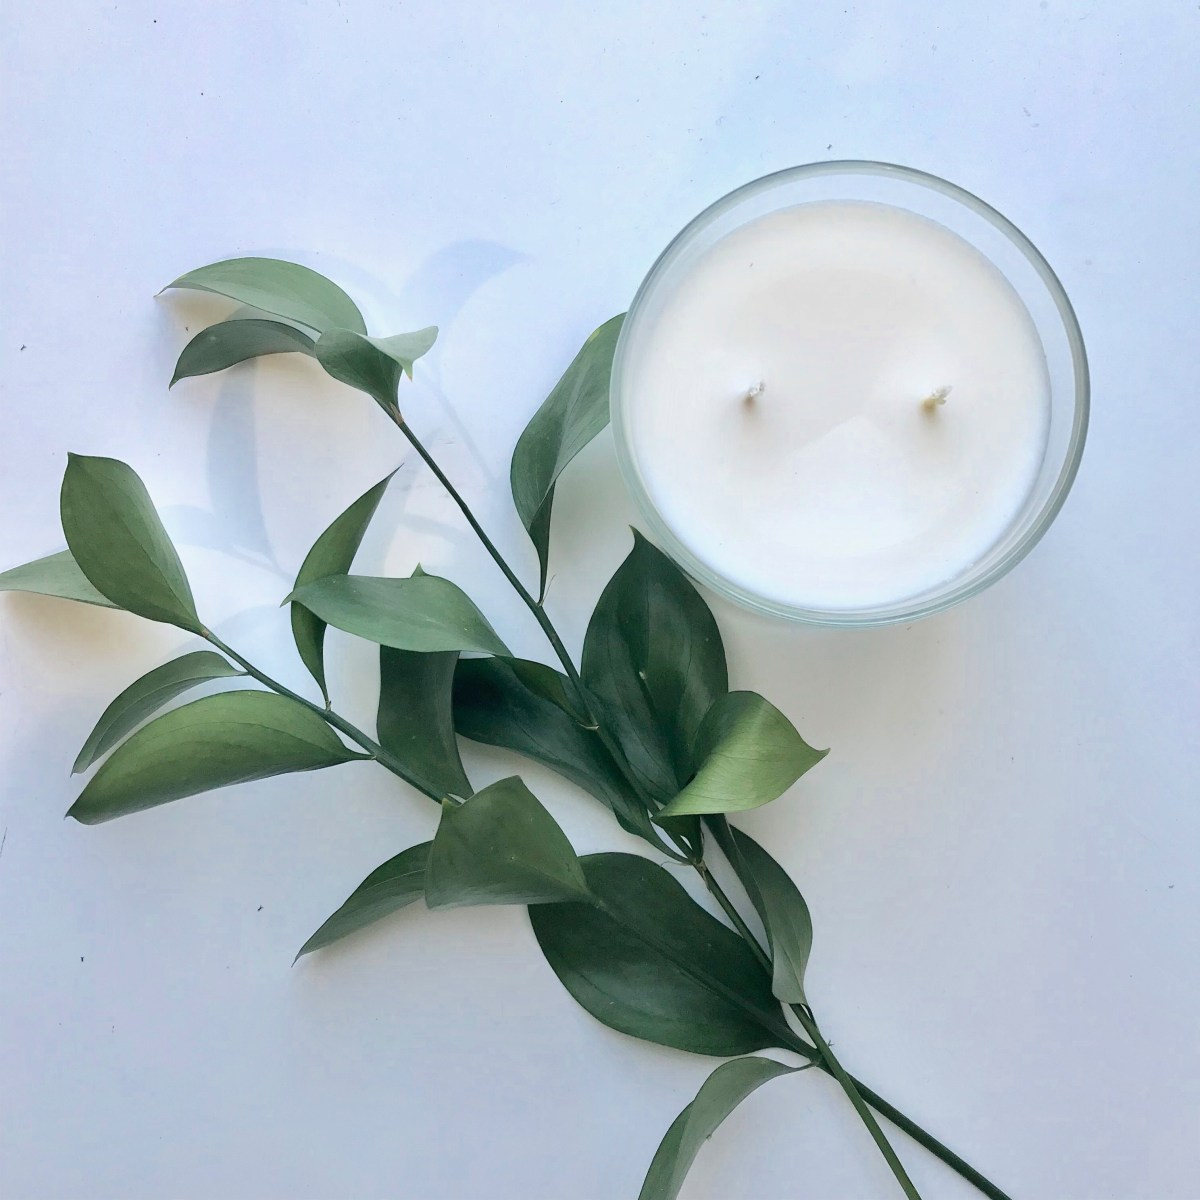 HOW TO MAKE SOYA CANDLES